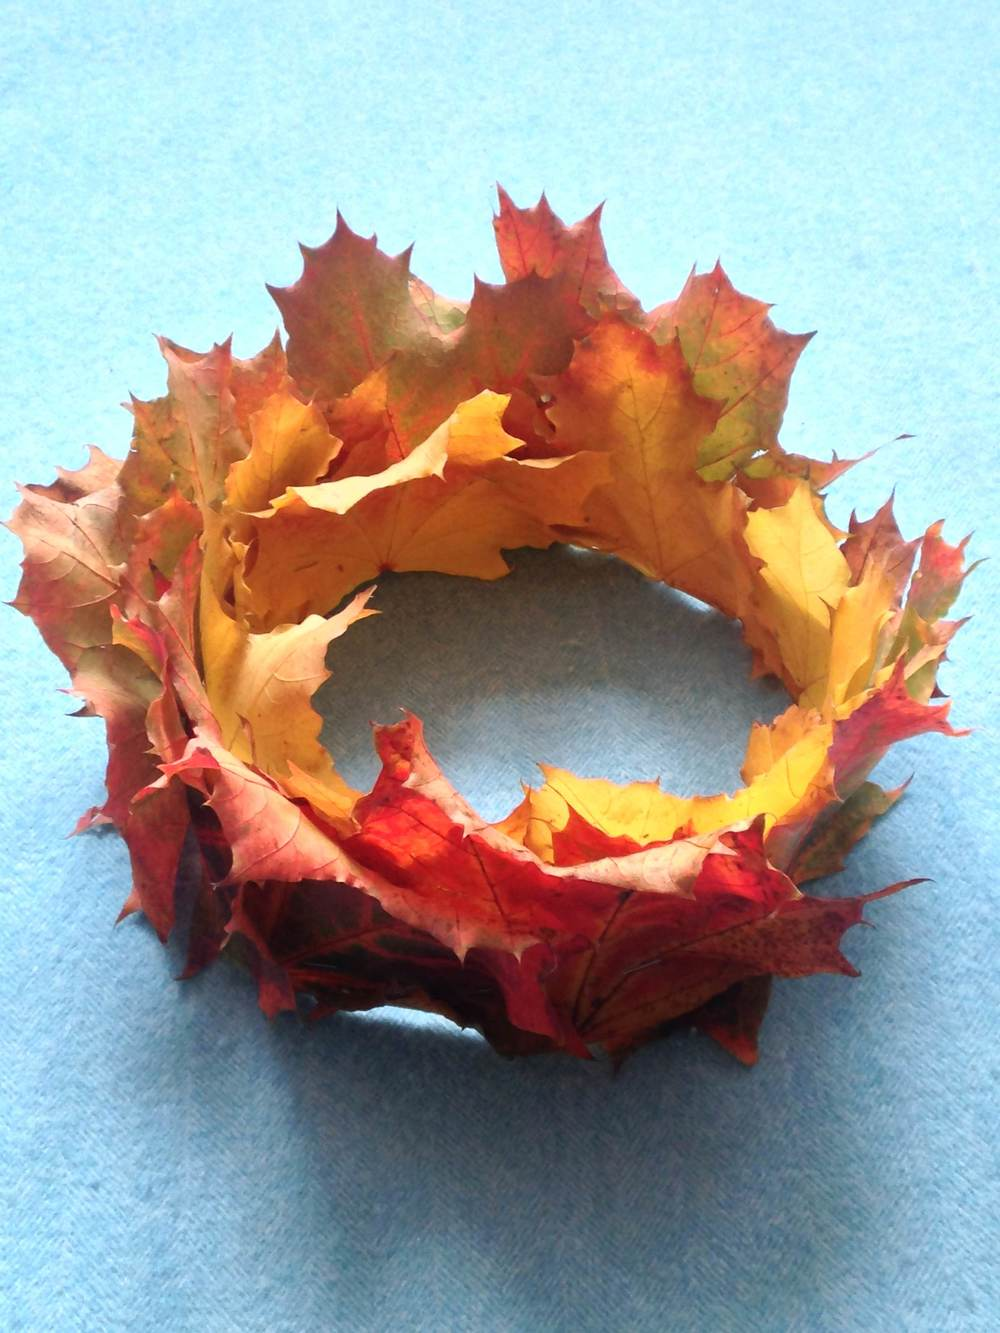 A leaf crown made of maple leaves from the park